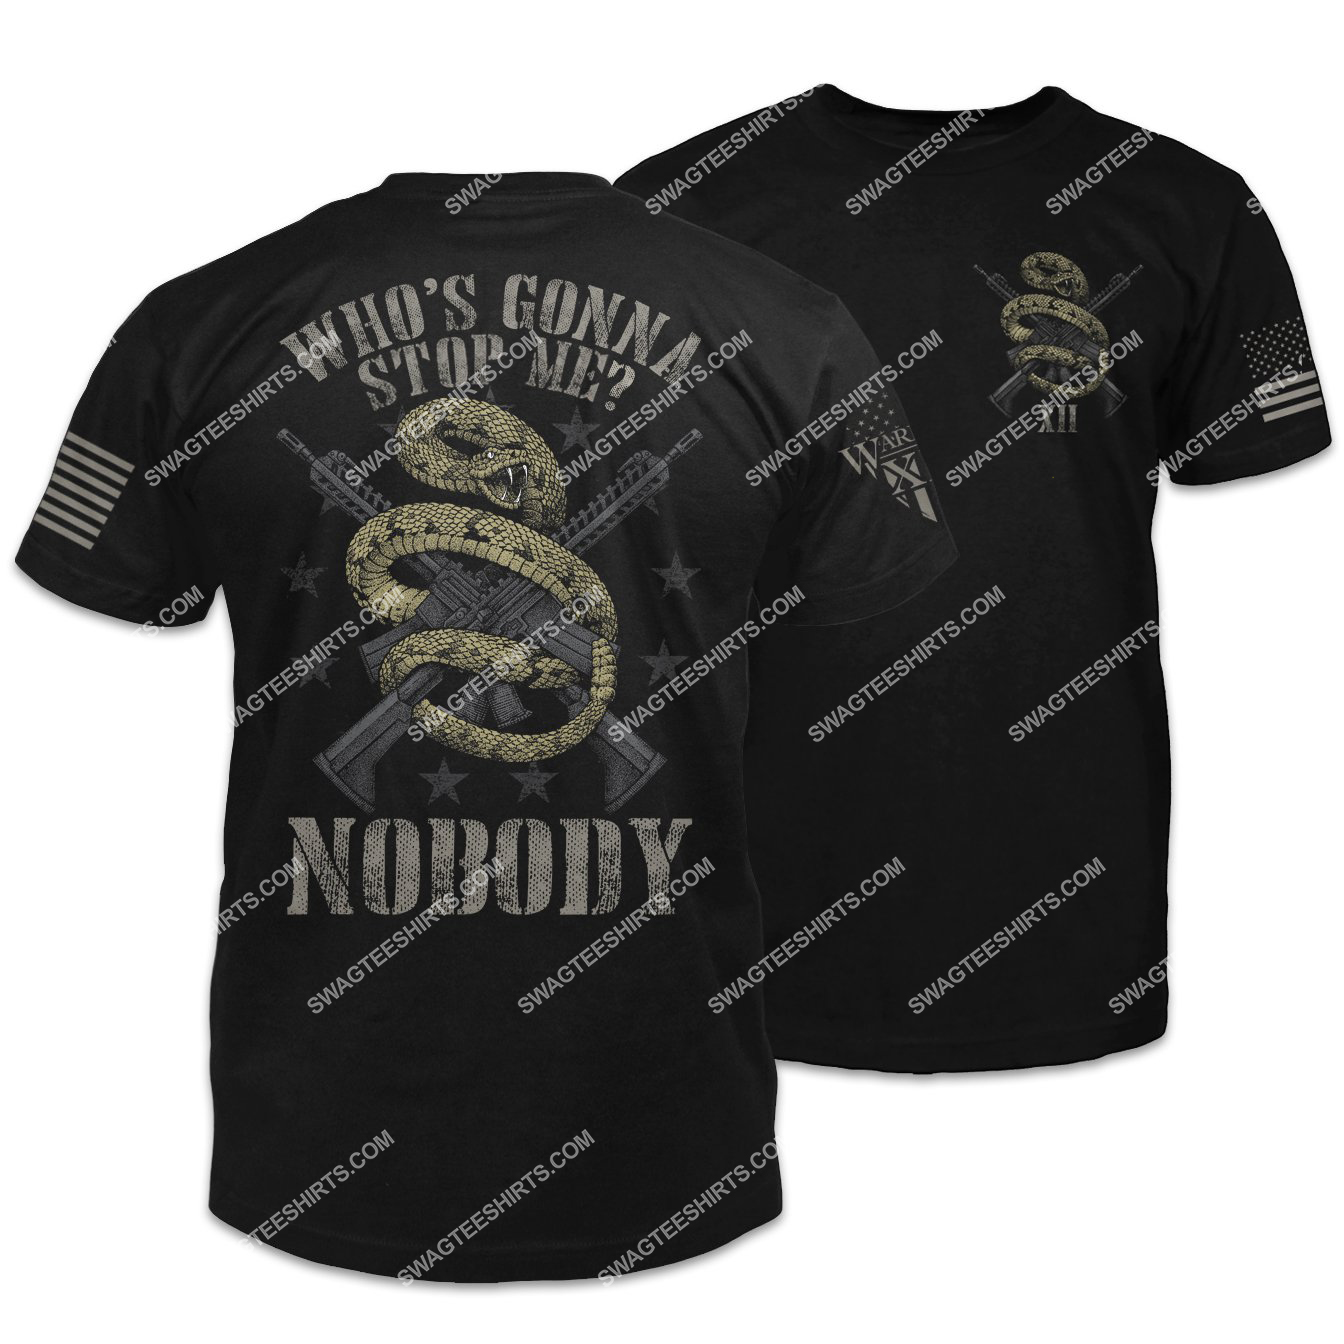 who's gonna stop me nobody snake with guns shirt 1 - Copy